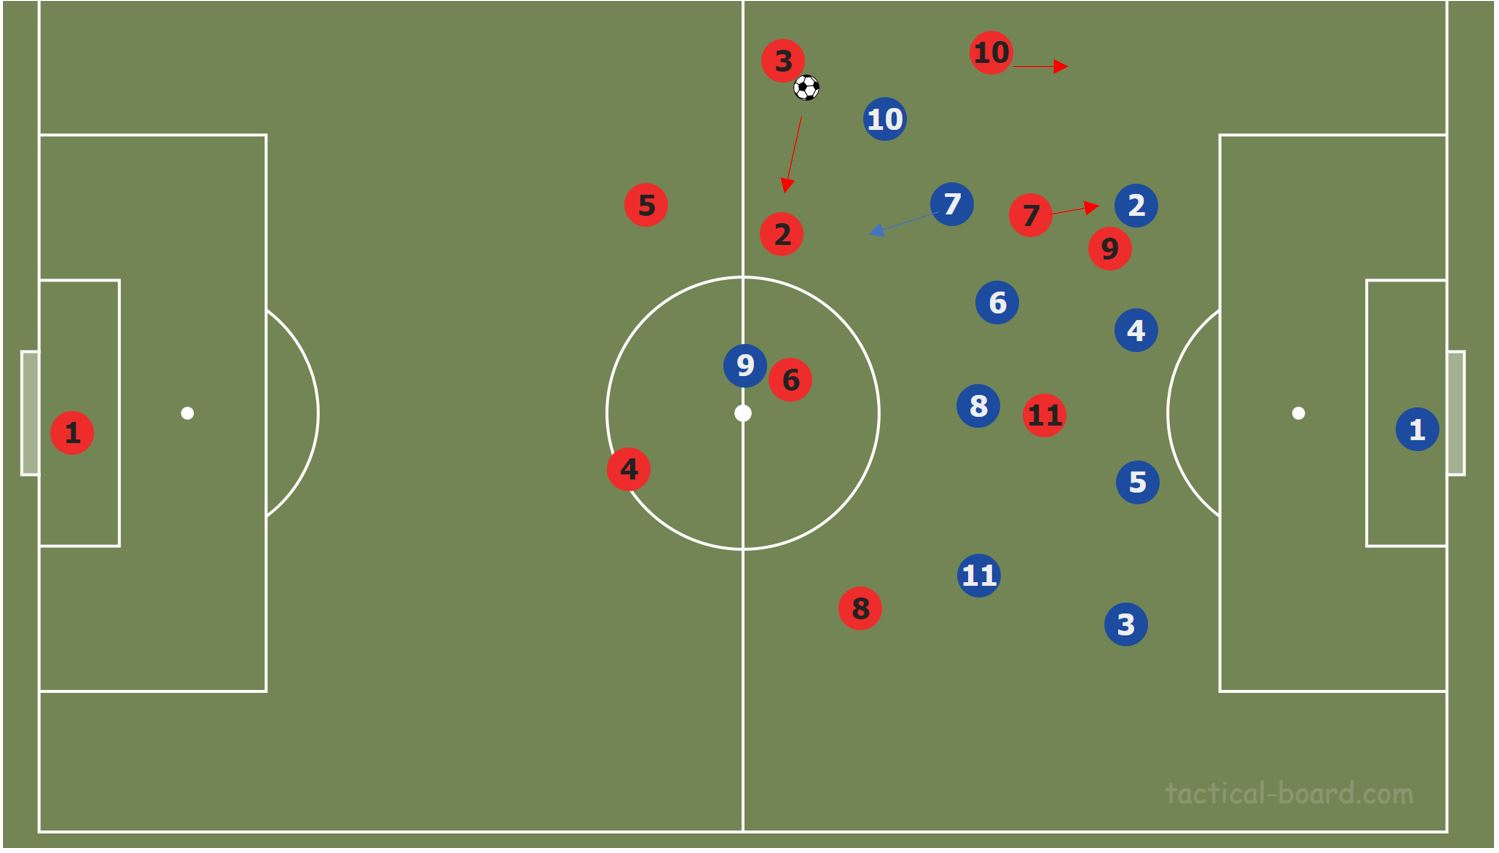 2.Bundesliga 2019/20: VfB Stuttgart vs 1.FC Nuremberg- tactical analysis